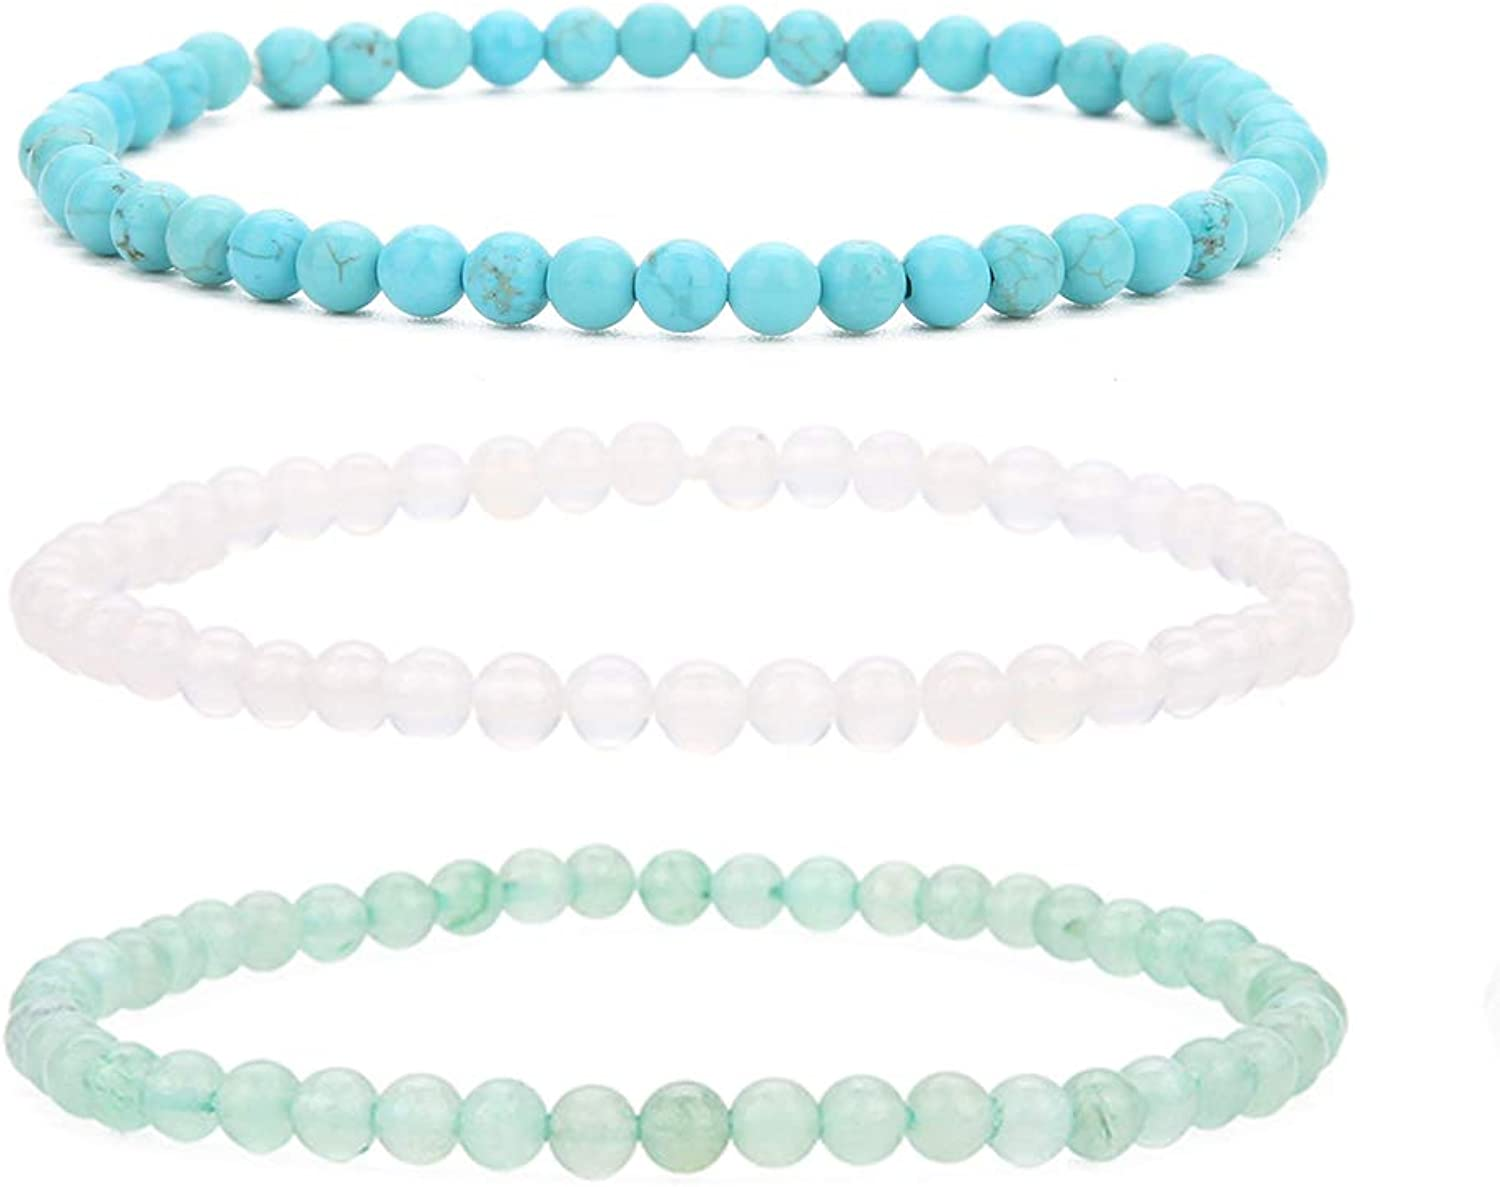 BALIBALI 4MM Mini Gemstone Energy Bracelets Tiny Bracelet Natural Stone Statement Bracelet Charm Beaded Couples Bracelets